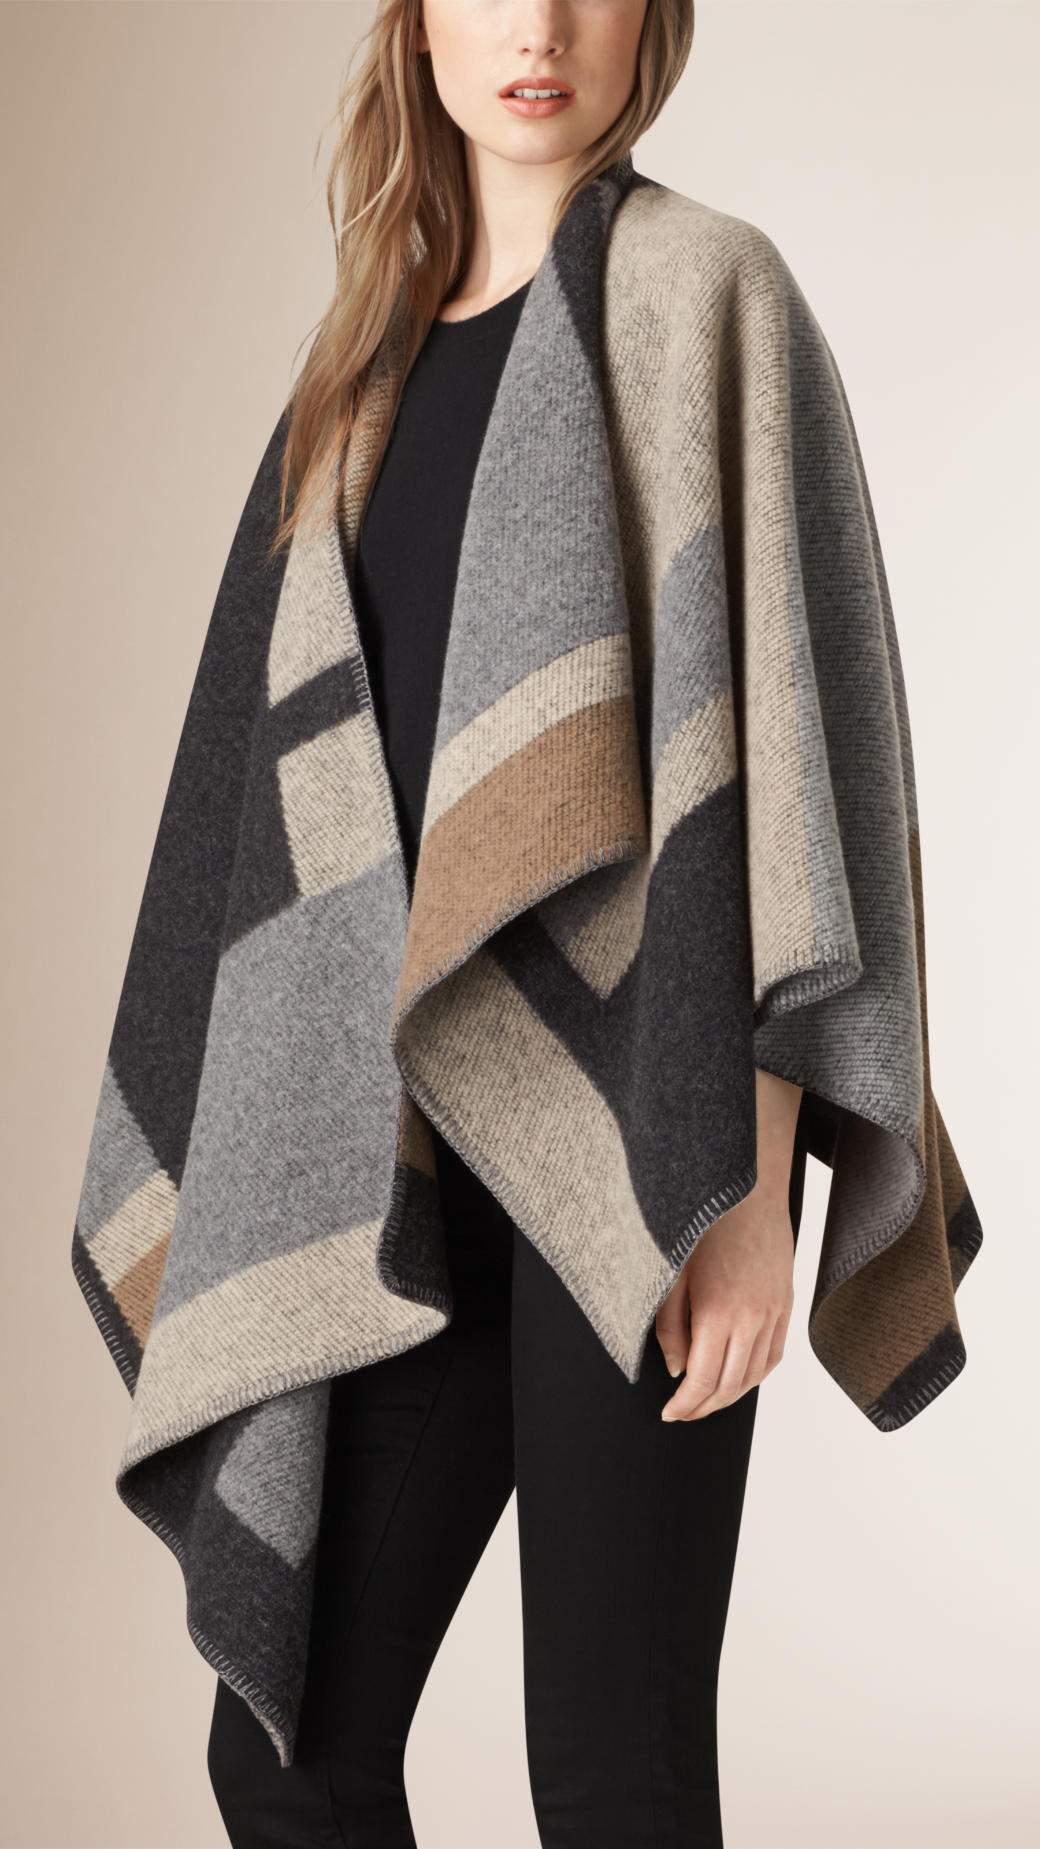 burberry-pale-camel-wool-cashmere-blanket-cape-poncho